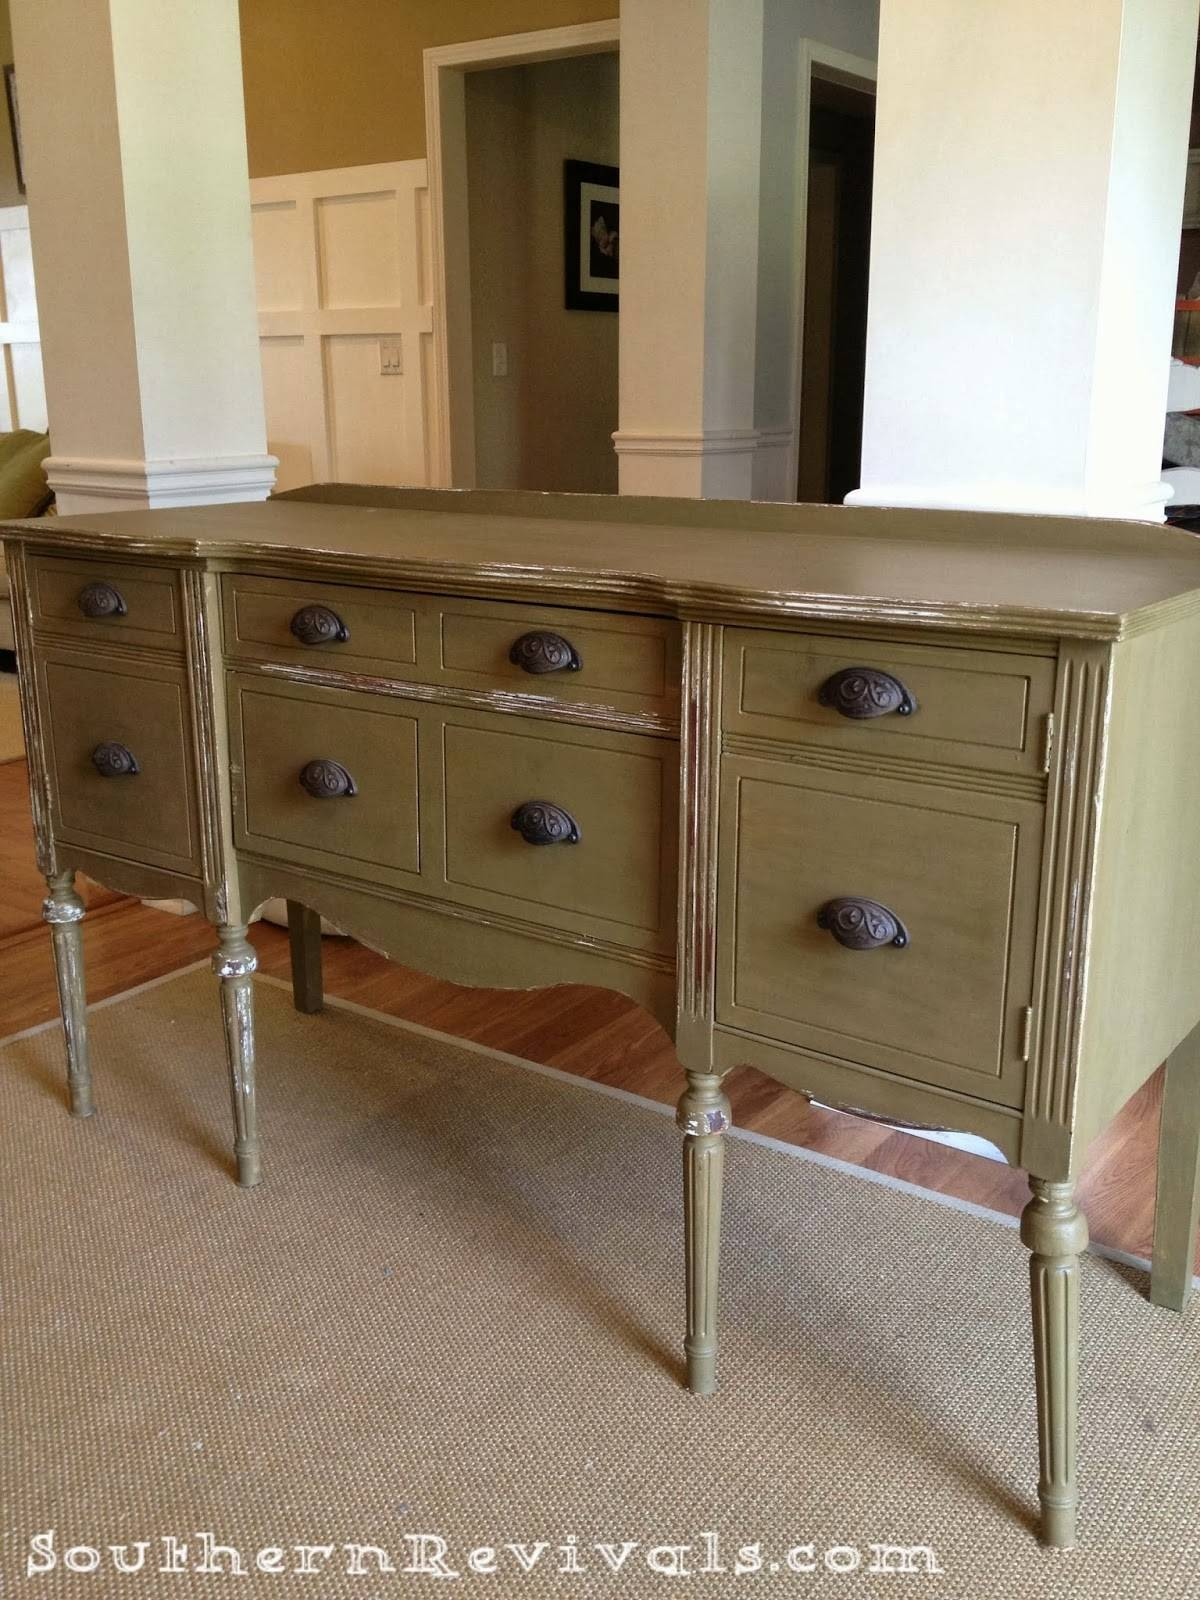 Updating A Vintage Sideboard Buffet With A Pop Of Color - Southern throughout Antique Sideboard Buffets (Image 14 of 15)